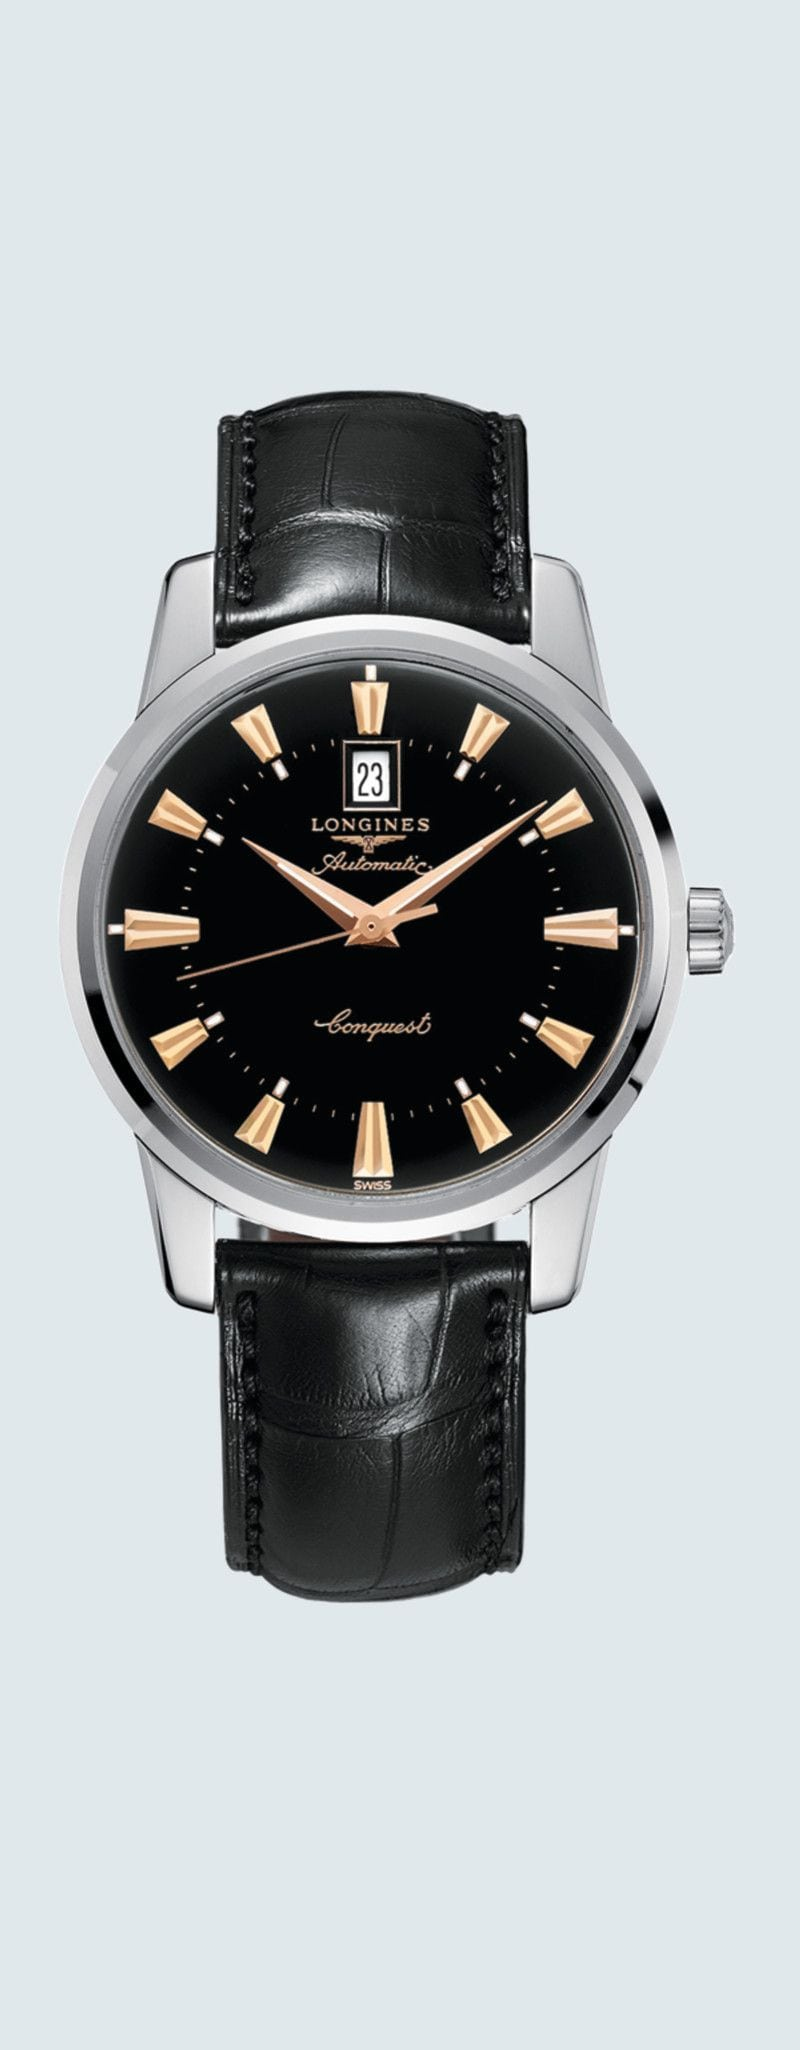 40.00 mm Stainless steel case with Black lacquered polished dial and Alligator strap Black strap -